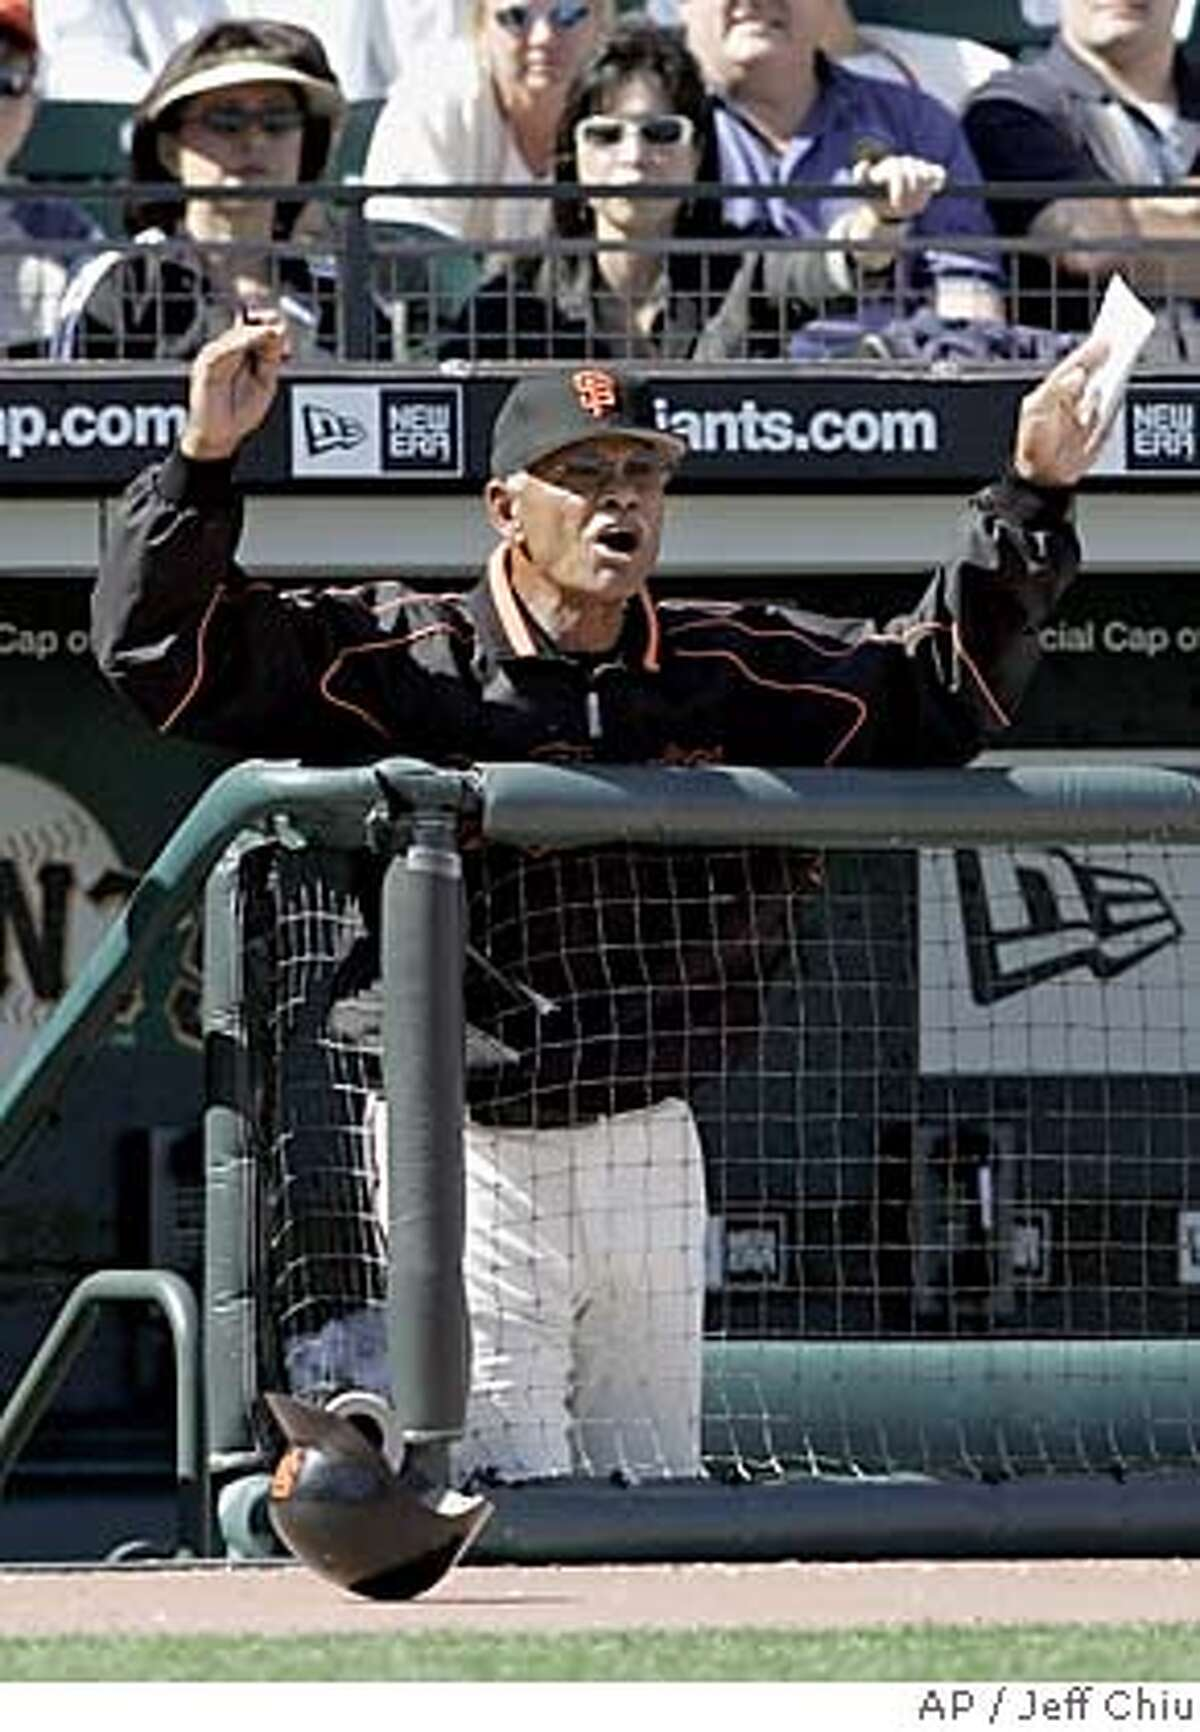 San Francisco Giants manager Felipe Alou yells at umpires after Giants' Lance Niekro struck out to end the eighth inning against the Chicago Cubs in San Francisco on Sunday, Sept. 11, 2005. The Cubs won, 3-2. (AP Photo/Jeff Chiu)